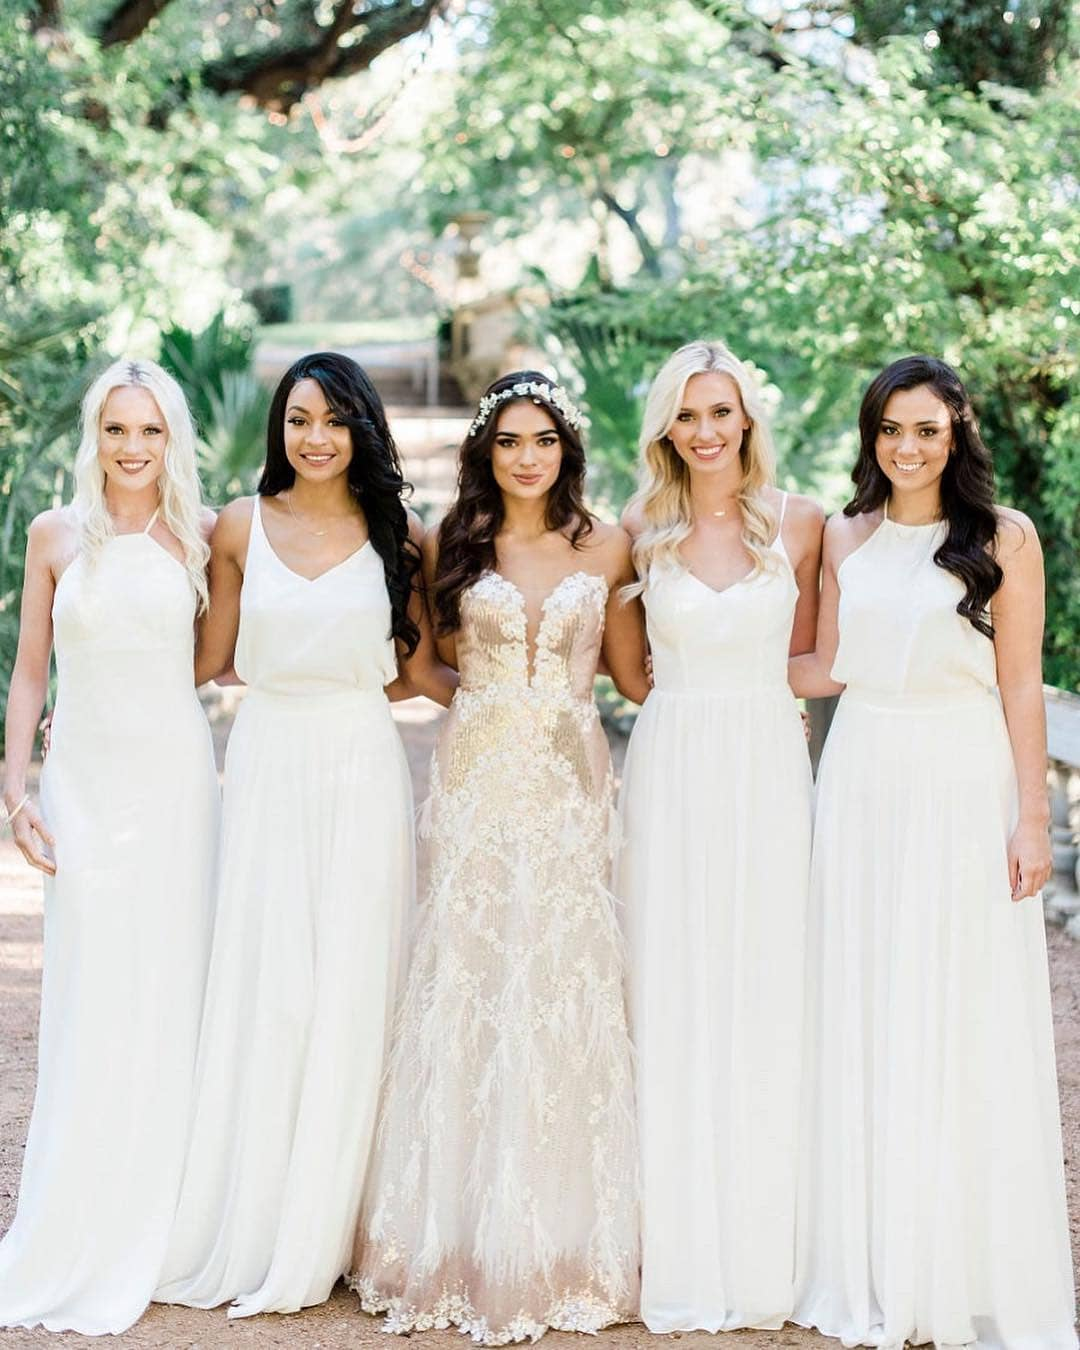 739ab13d0 Yesterday a bride in our DMs asked us what colour her bridesmaids should  wear since she